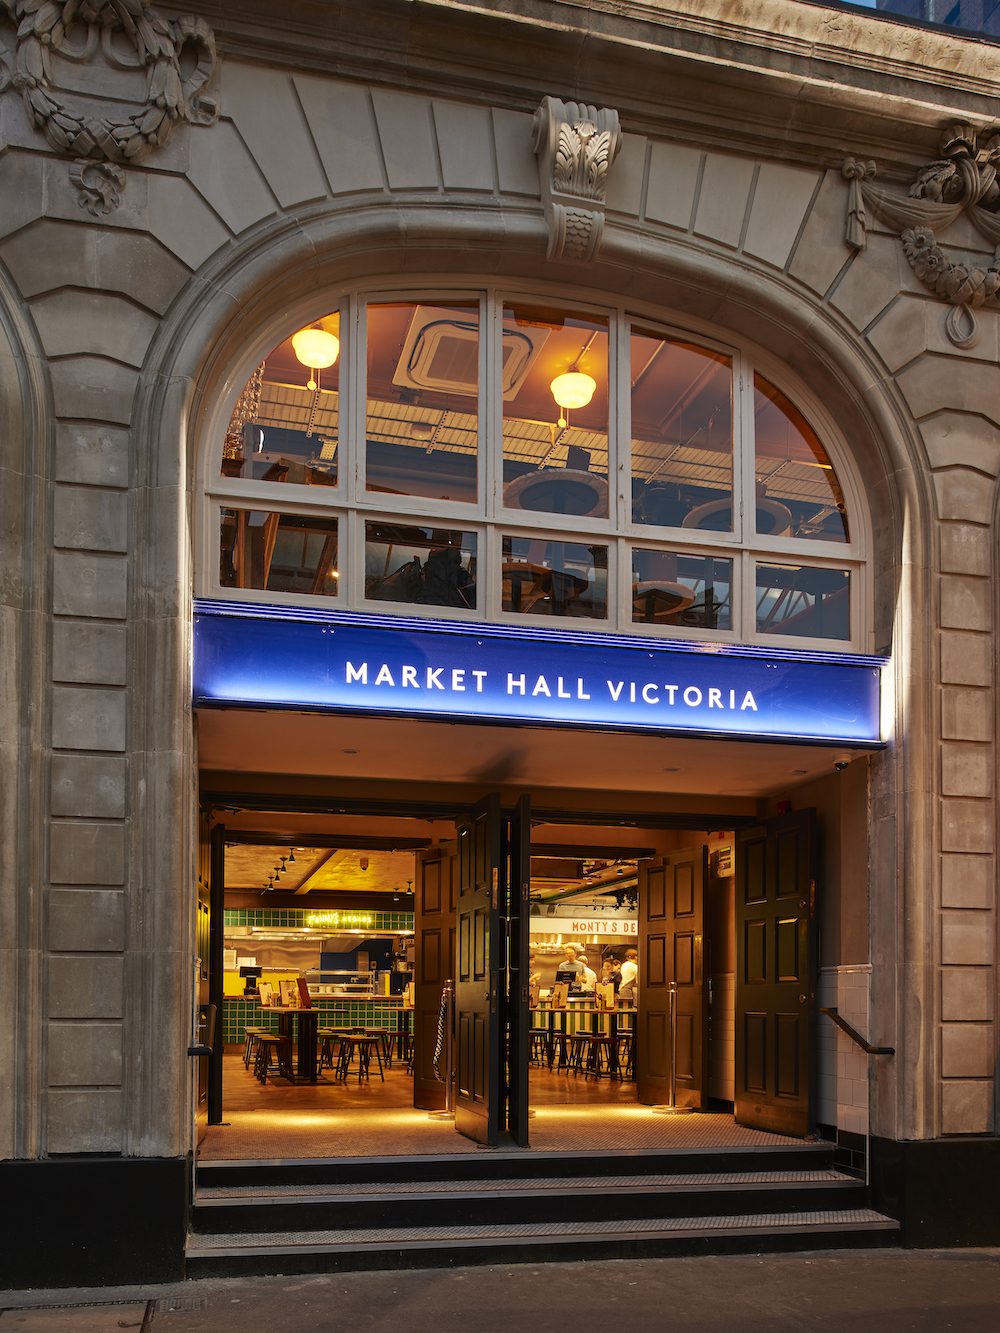 the exterior of Market Hall Victoria